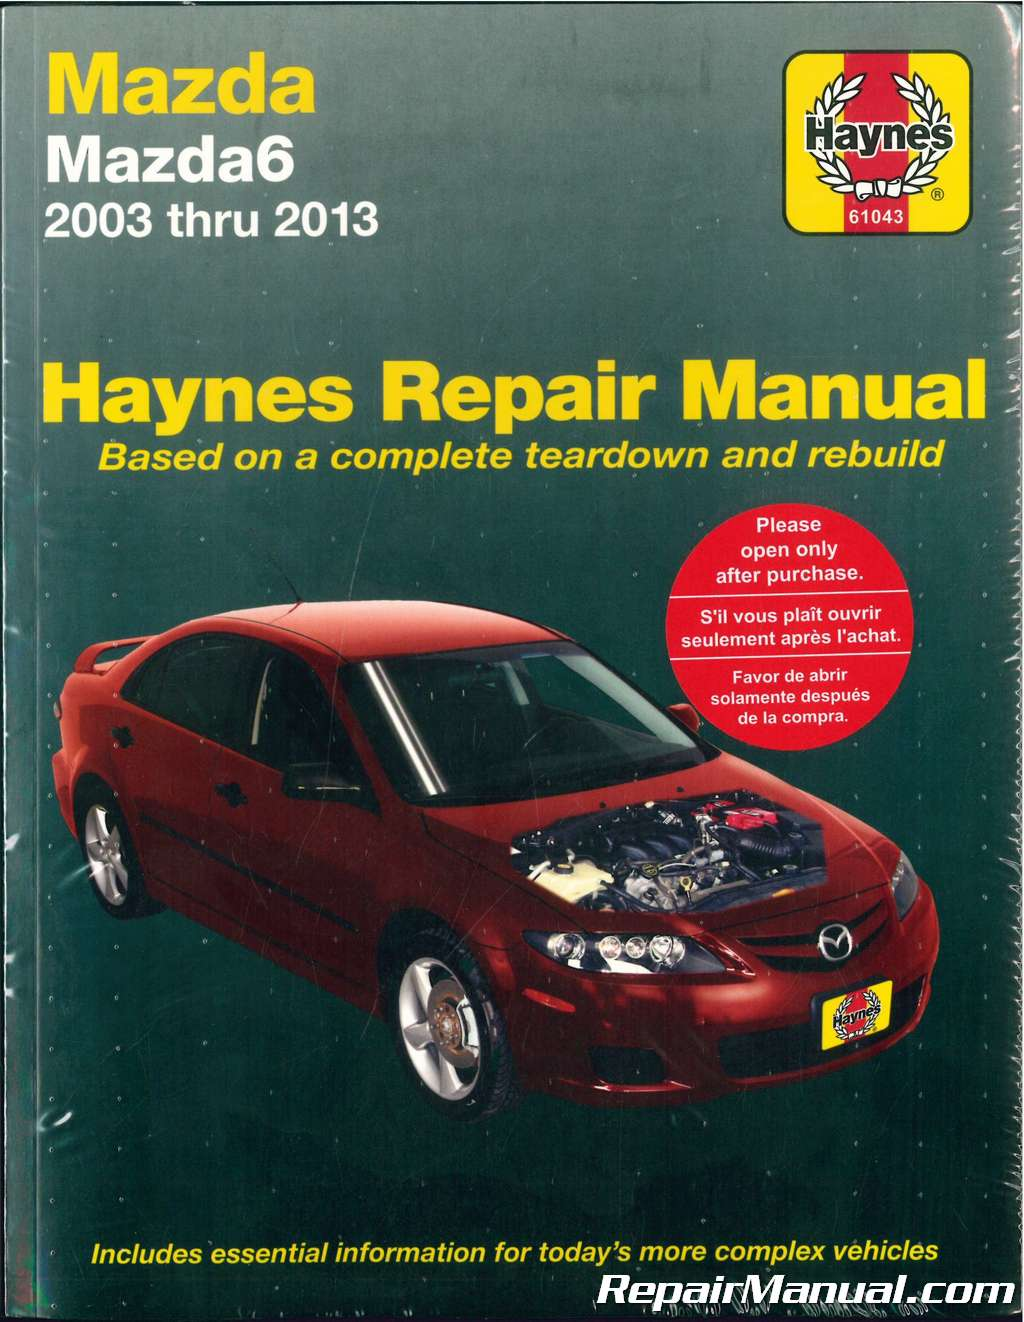 Mazda 3 Service Manual: Exhaust Emissions